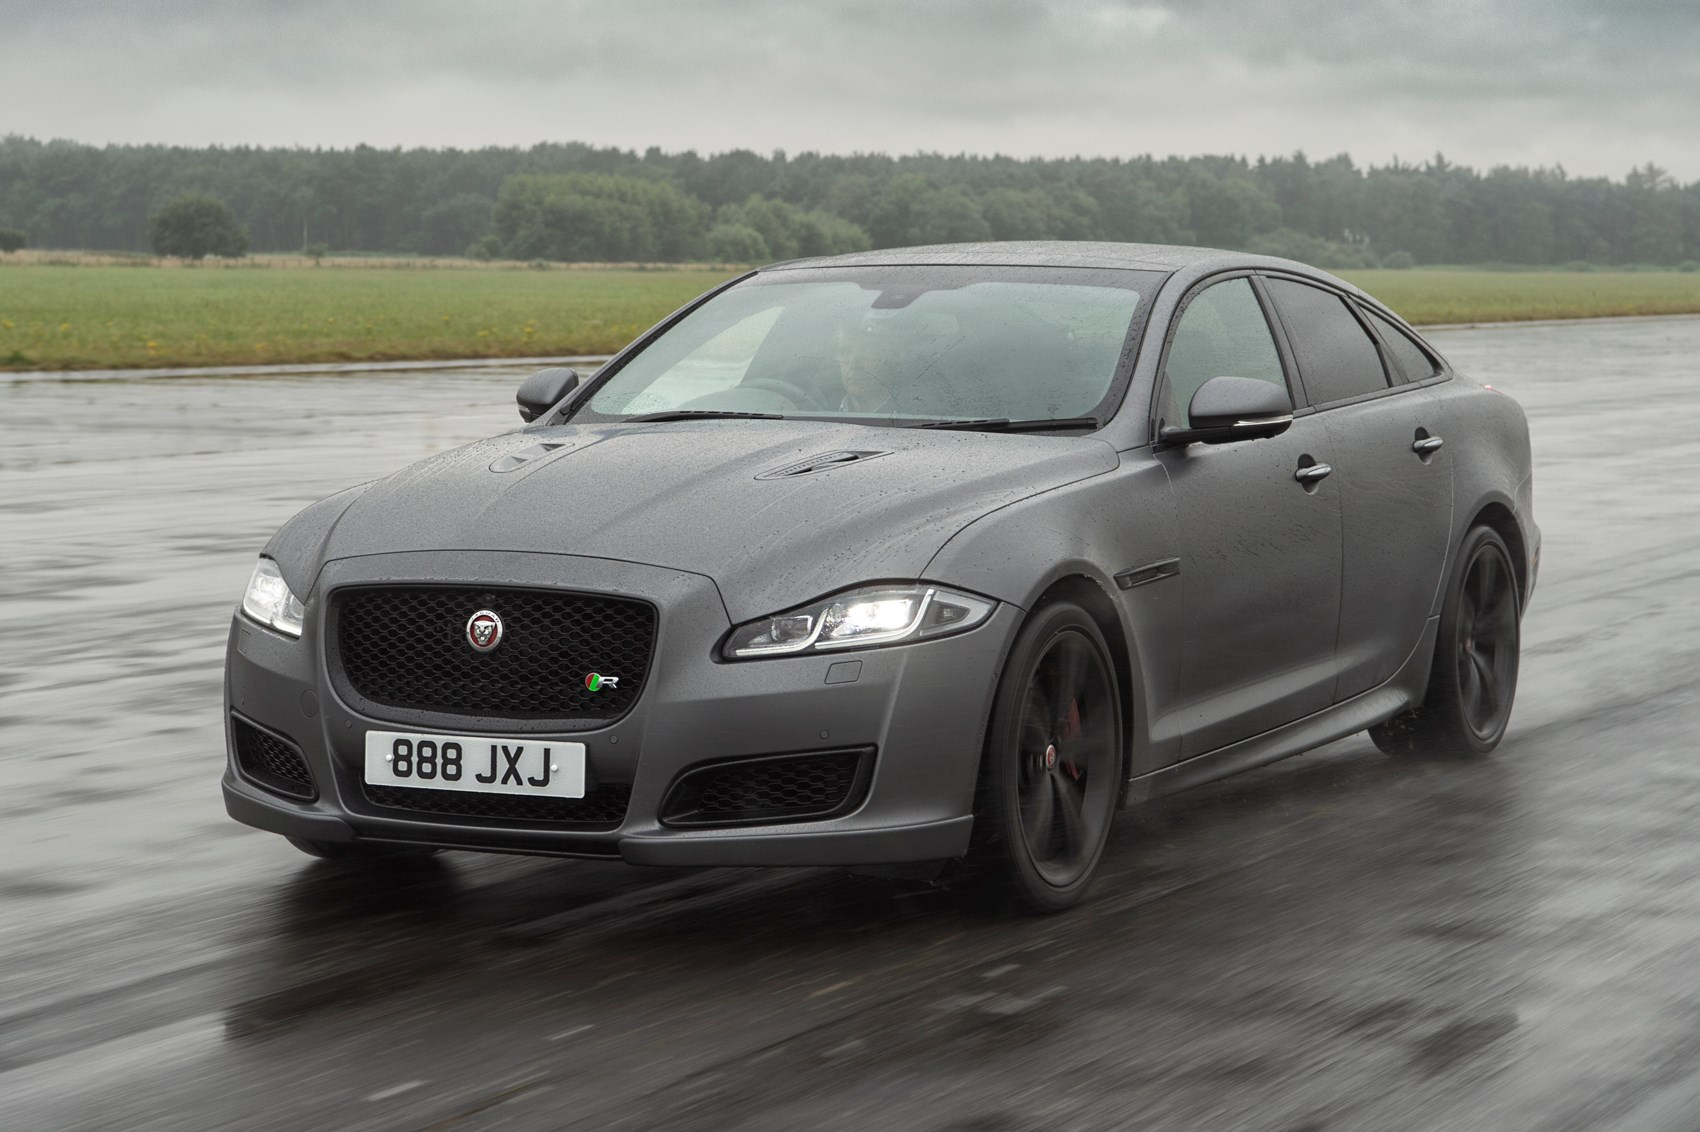 Jaguar Xjr 575 Super Saloon Roars In The Most Powerful Xj